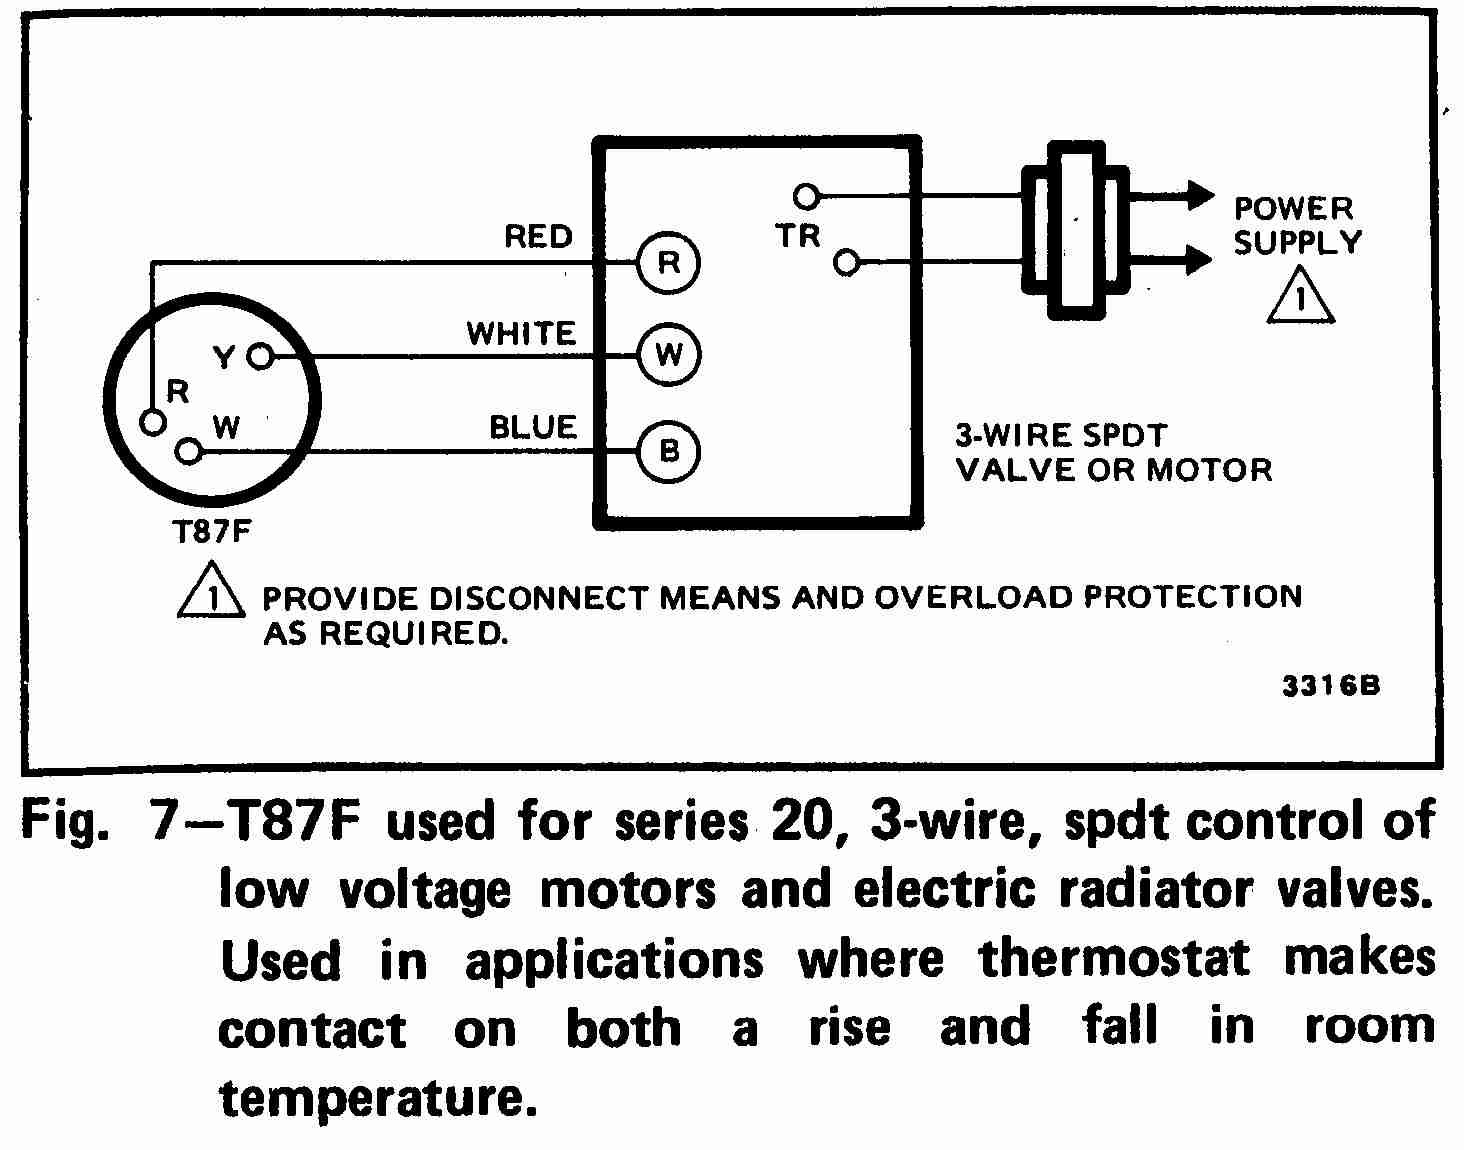 Williams Wall Furnace Blower Wiring Diagram | Wiring Diagram on 3 wire cable, 3 wire terminal block, 3 wire circuit breaker, 3 wire power supply, 3 wire control, 1 wire limit switch, 4 wire limit switch, 3 wire light, 3 wire load cell, 6 wire limit switch, 3 wire push button, 3 wire stepper motor, 3 wire junction box,